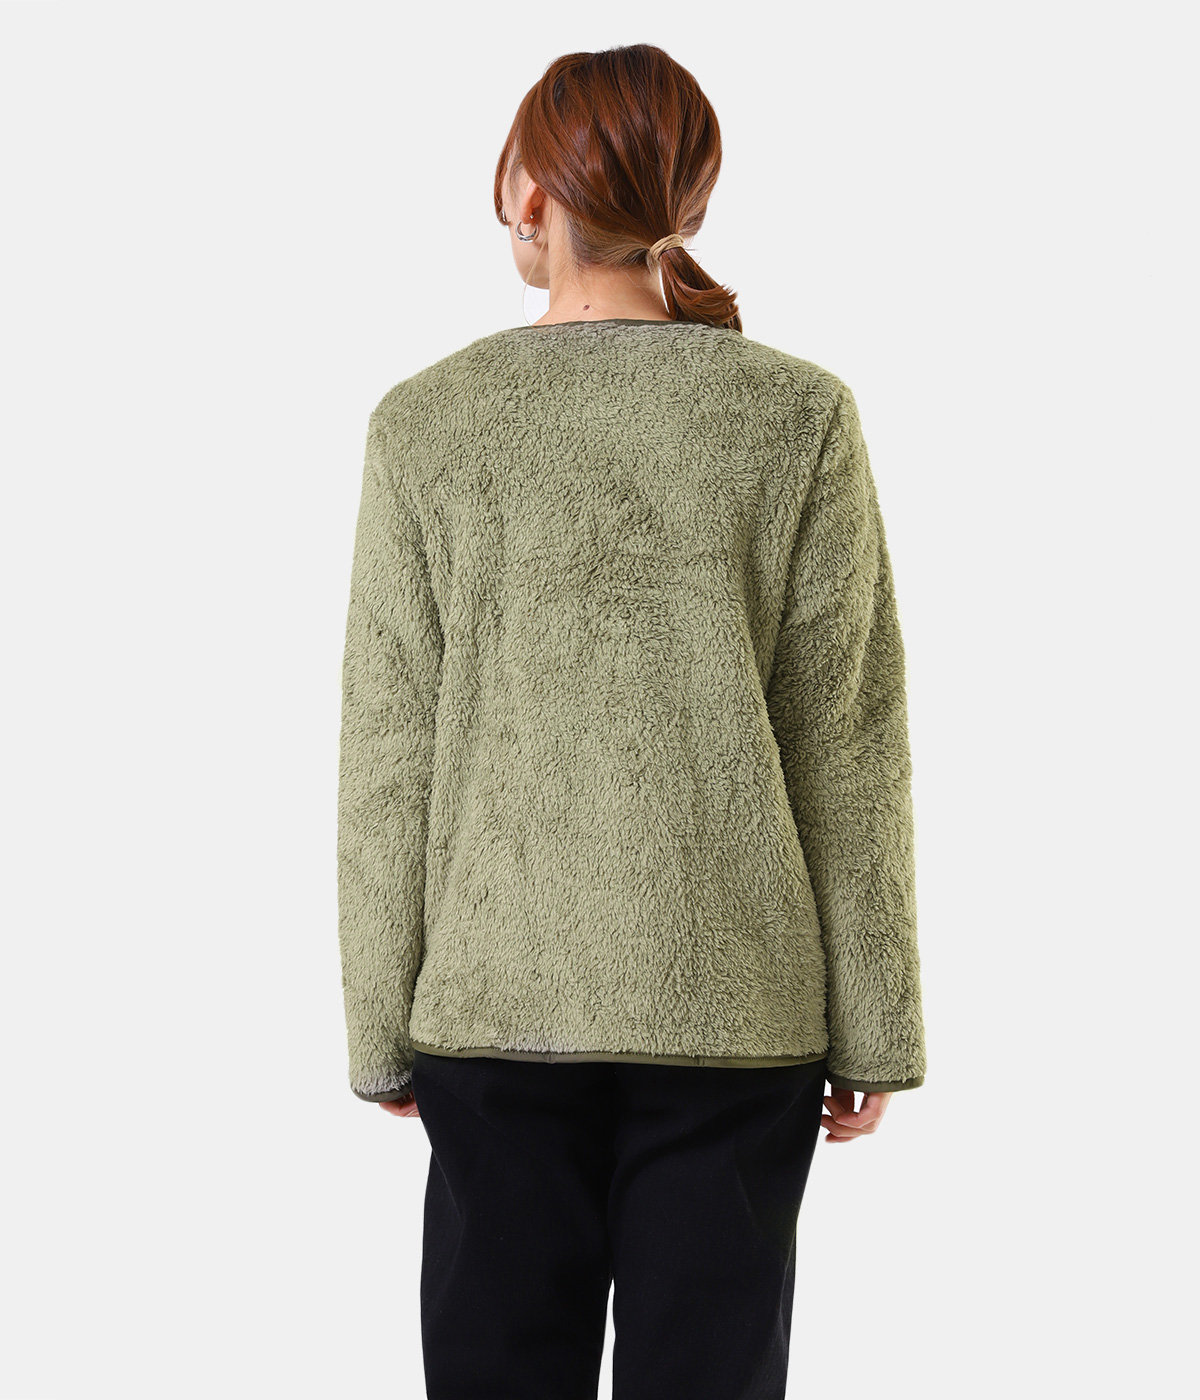 【レディース】Girls' Los Gatos Cardigan -BCW-